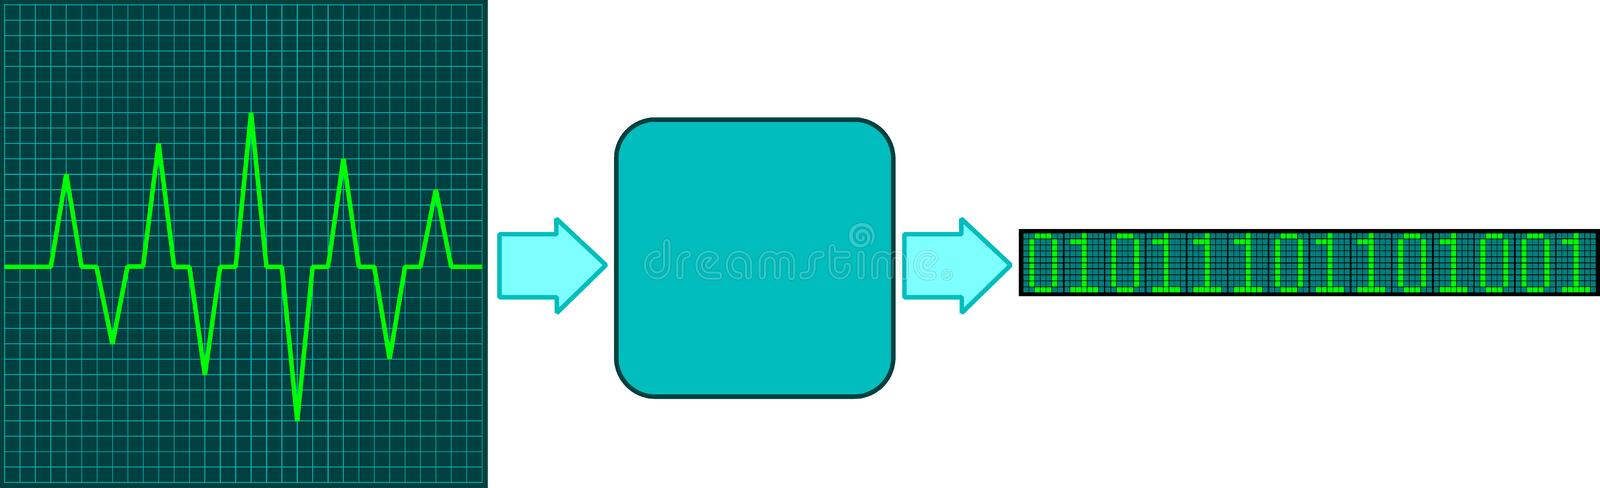 Download Conversion of signal stock vector. Illustration of network - 13312956